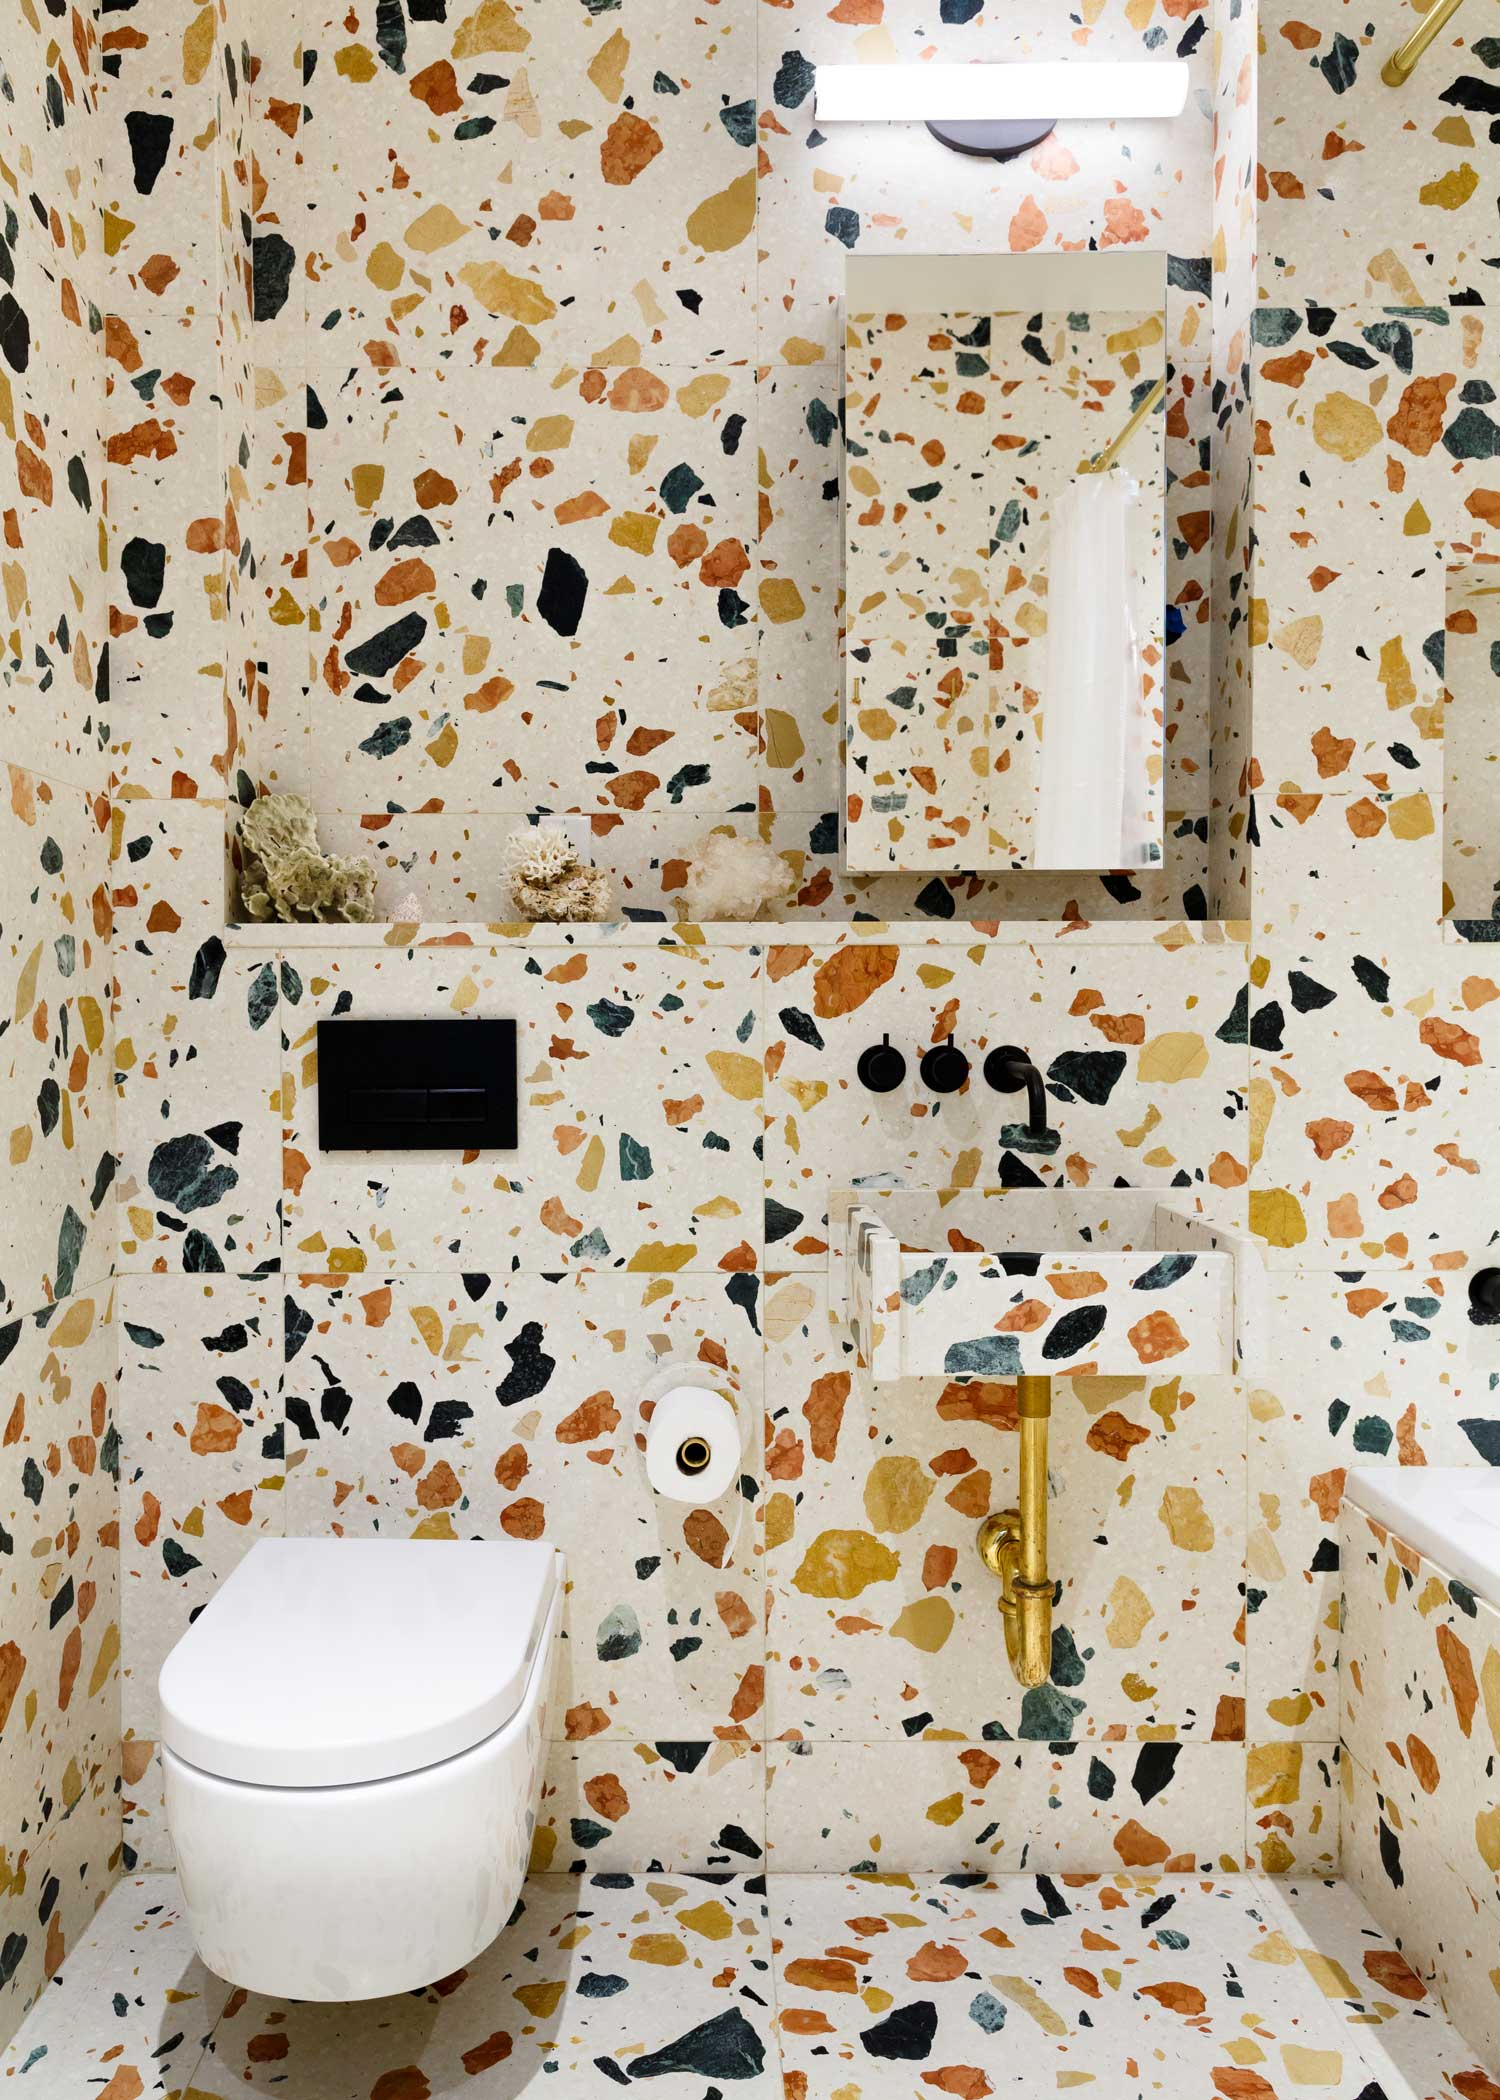 Pair of bathrooms in New York Residence, Marmoreal by Max Lamb | Yellowtrace